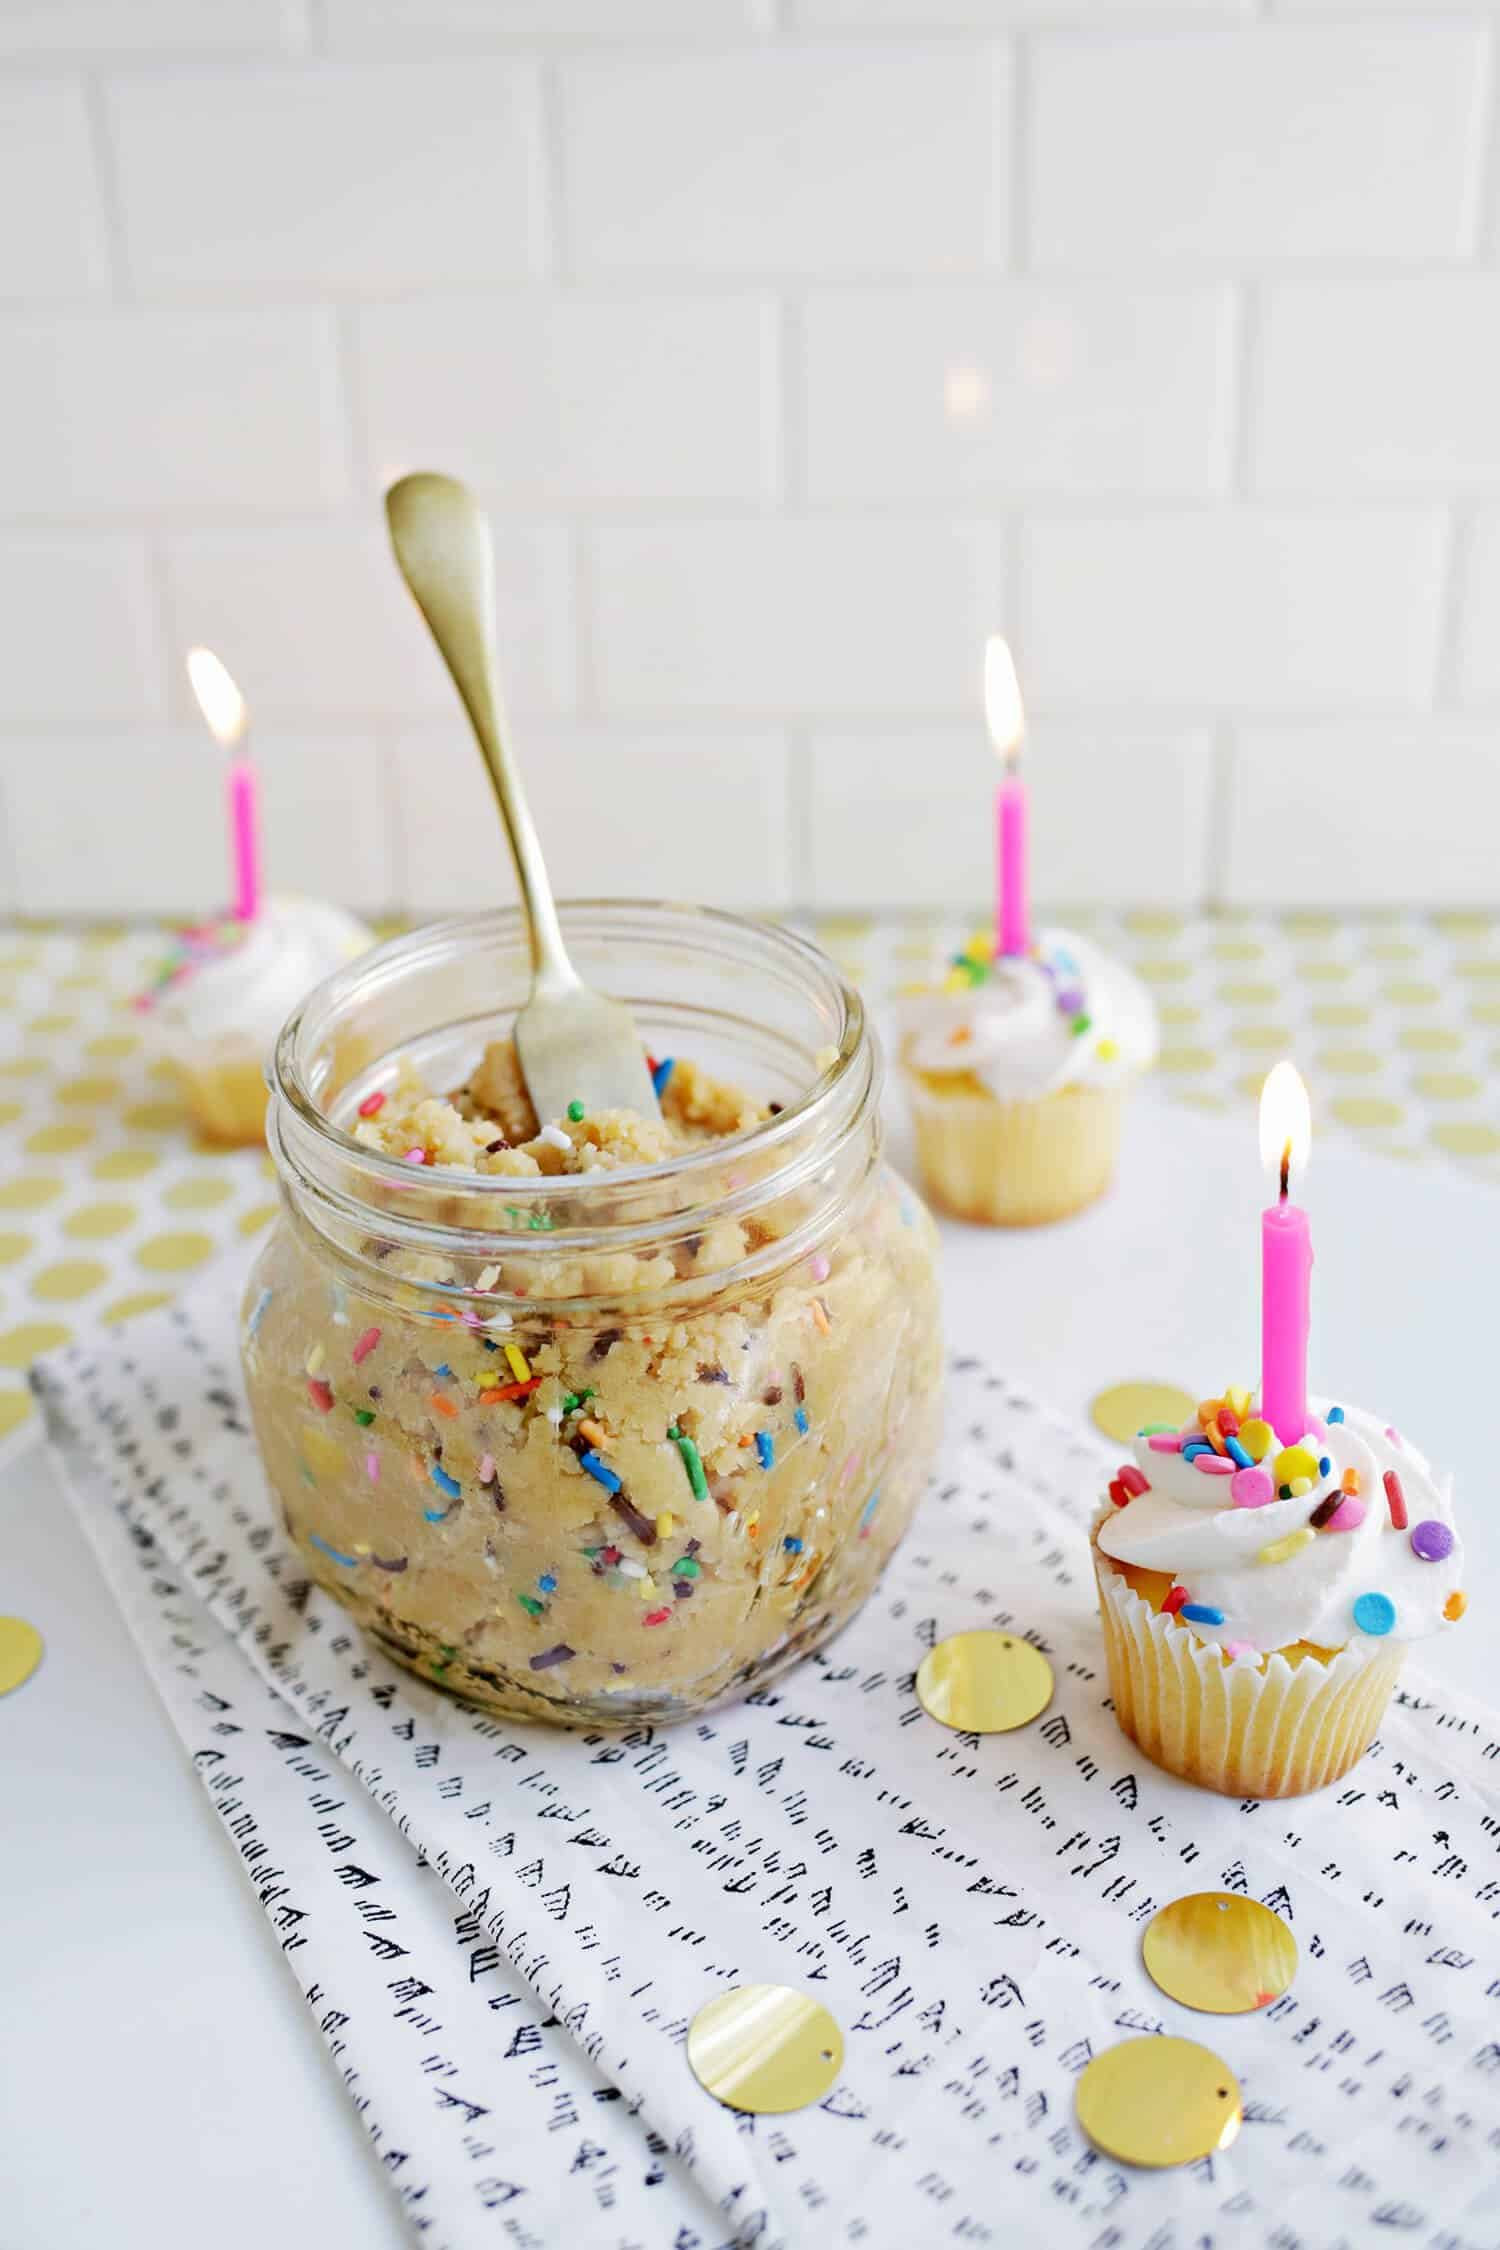 Surprising Birthday Cake Cookie Butter A Beautiful Mess Funny Birthday Cards Online Inifodamsfinfo